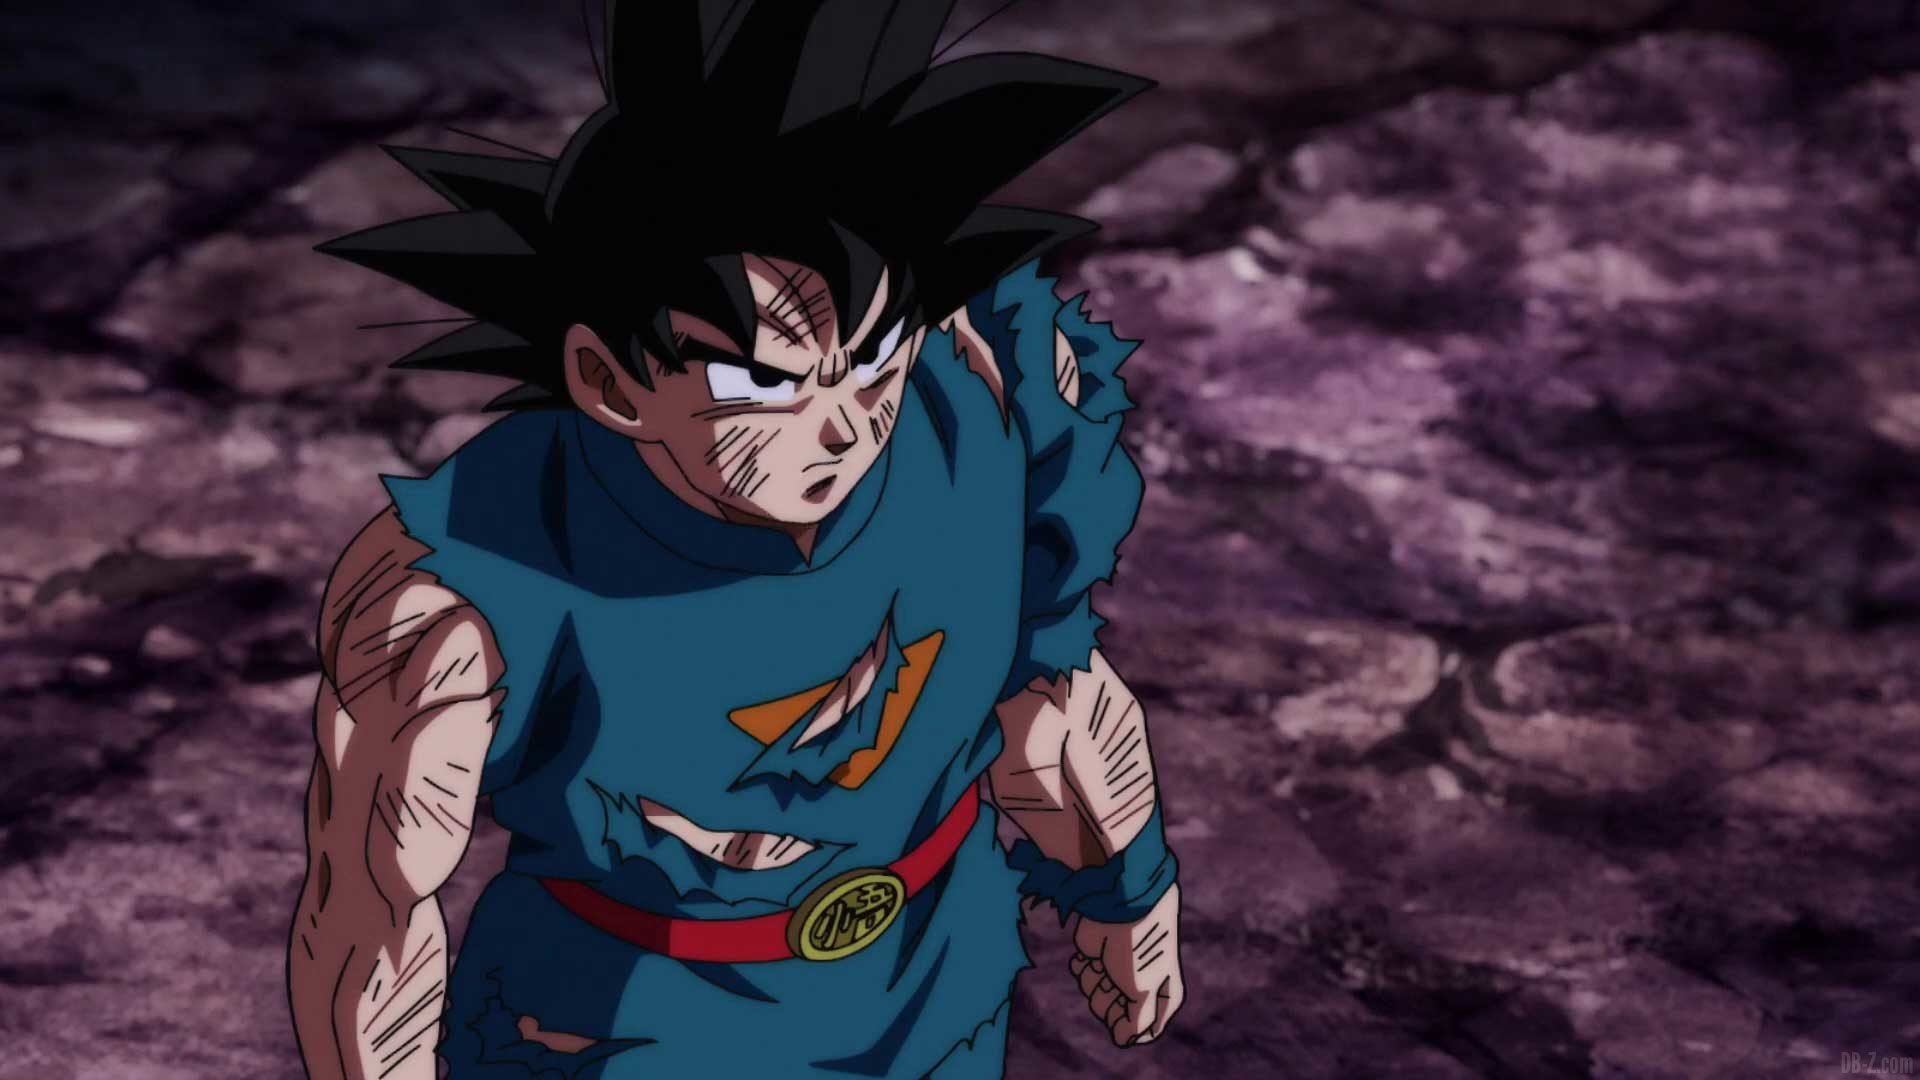 Super Dragon Ball Heroes Episode 12 Date Synopsis